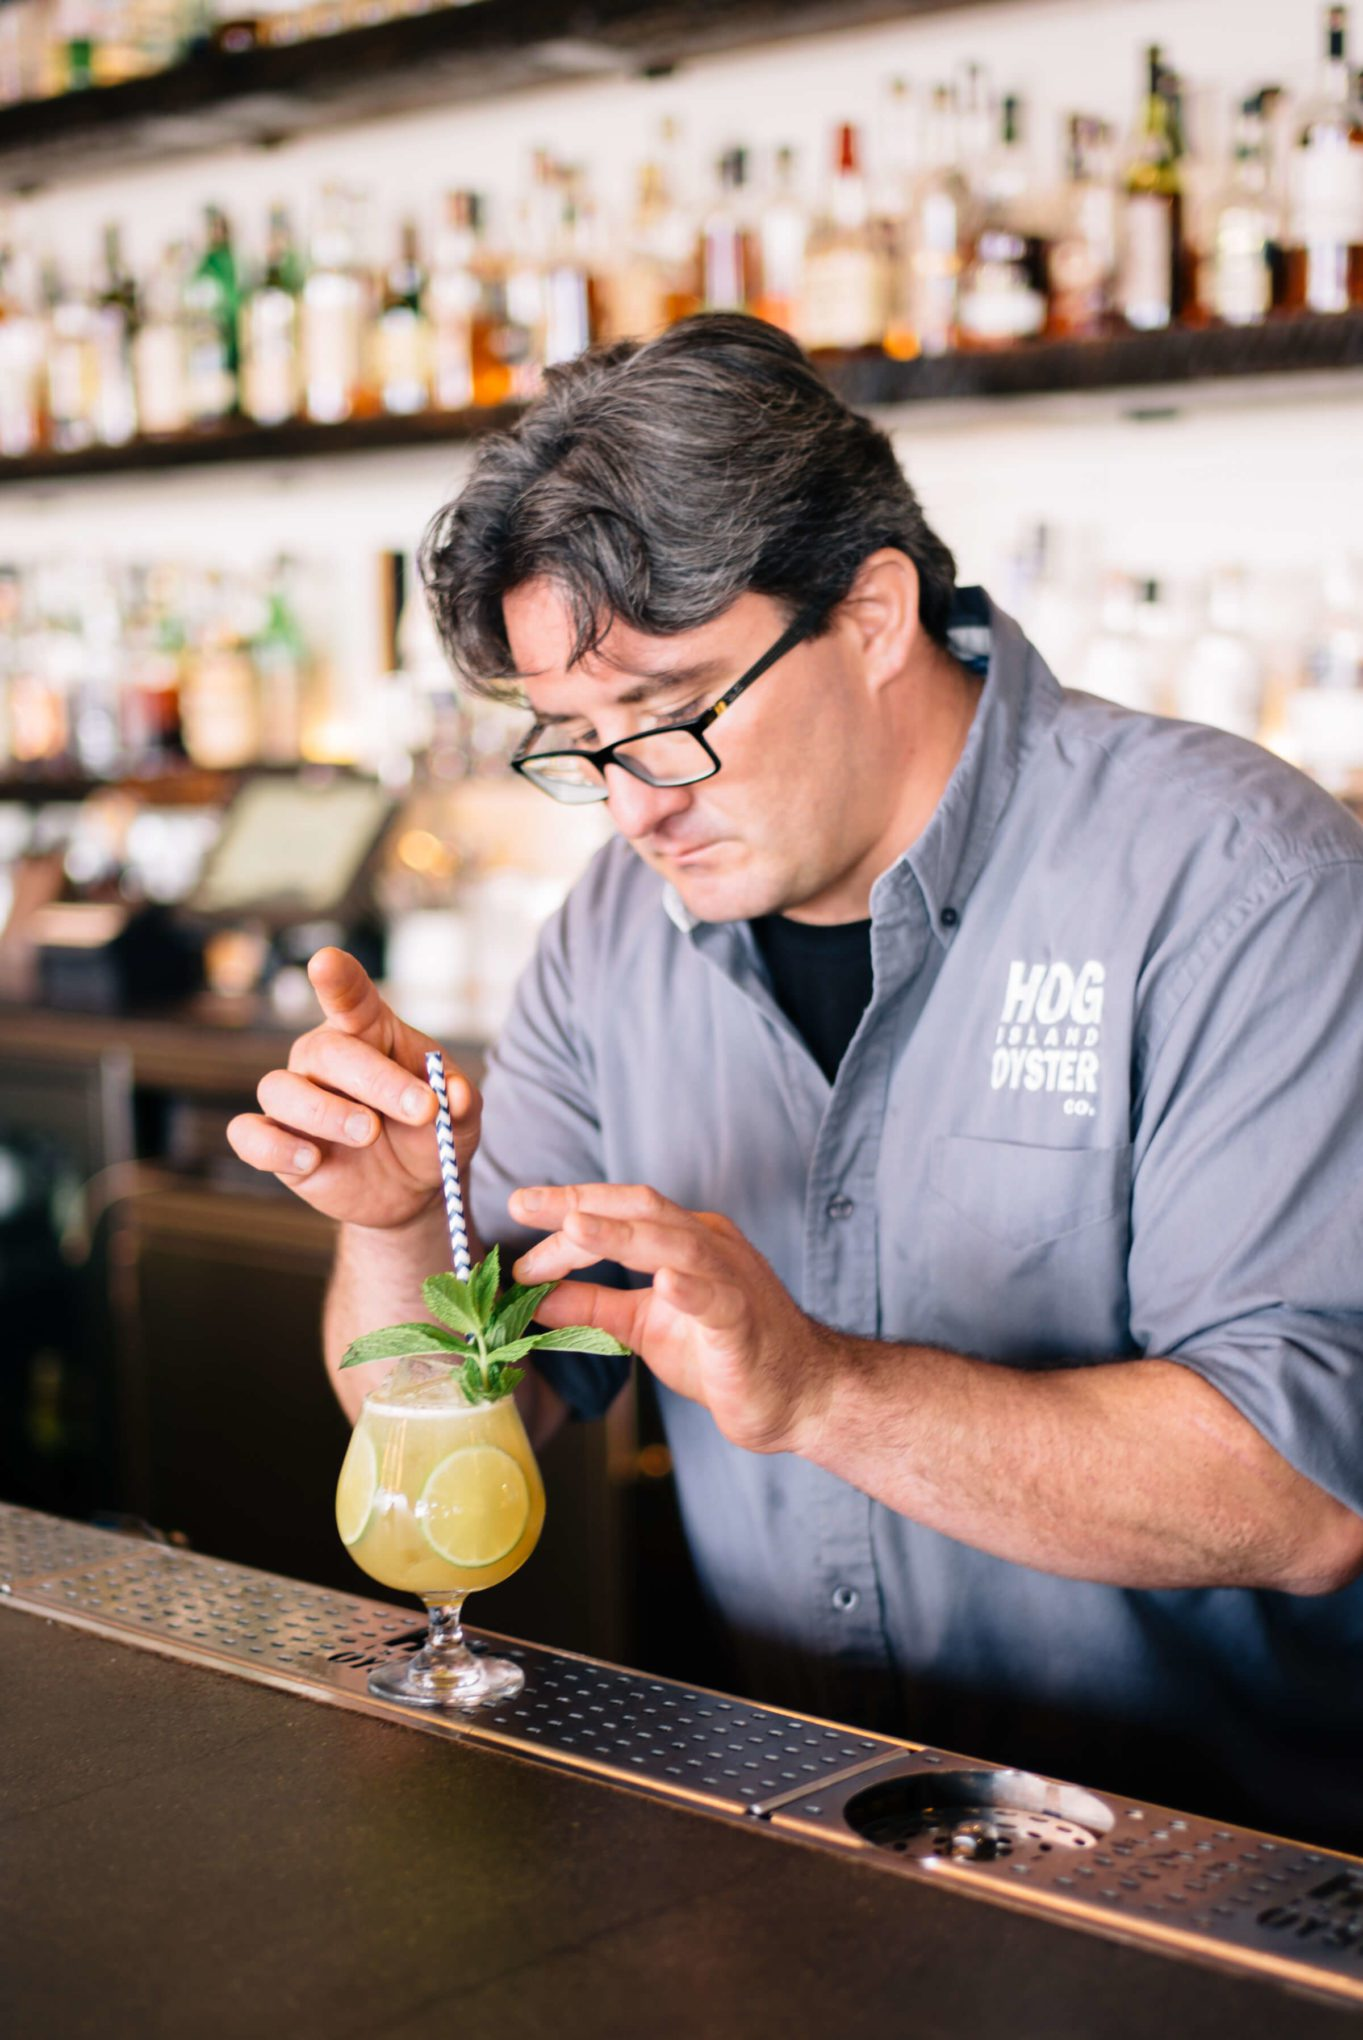 Finishing this Summer Cocktails: Hog Island Saul Ranella Sacred Cenote Mezcal Amaro Cocktail Recipe, restaurant recipe, The Taste SF